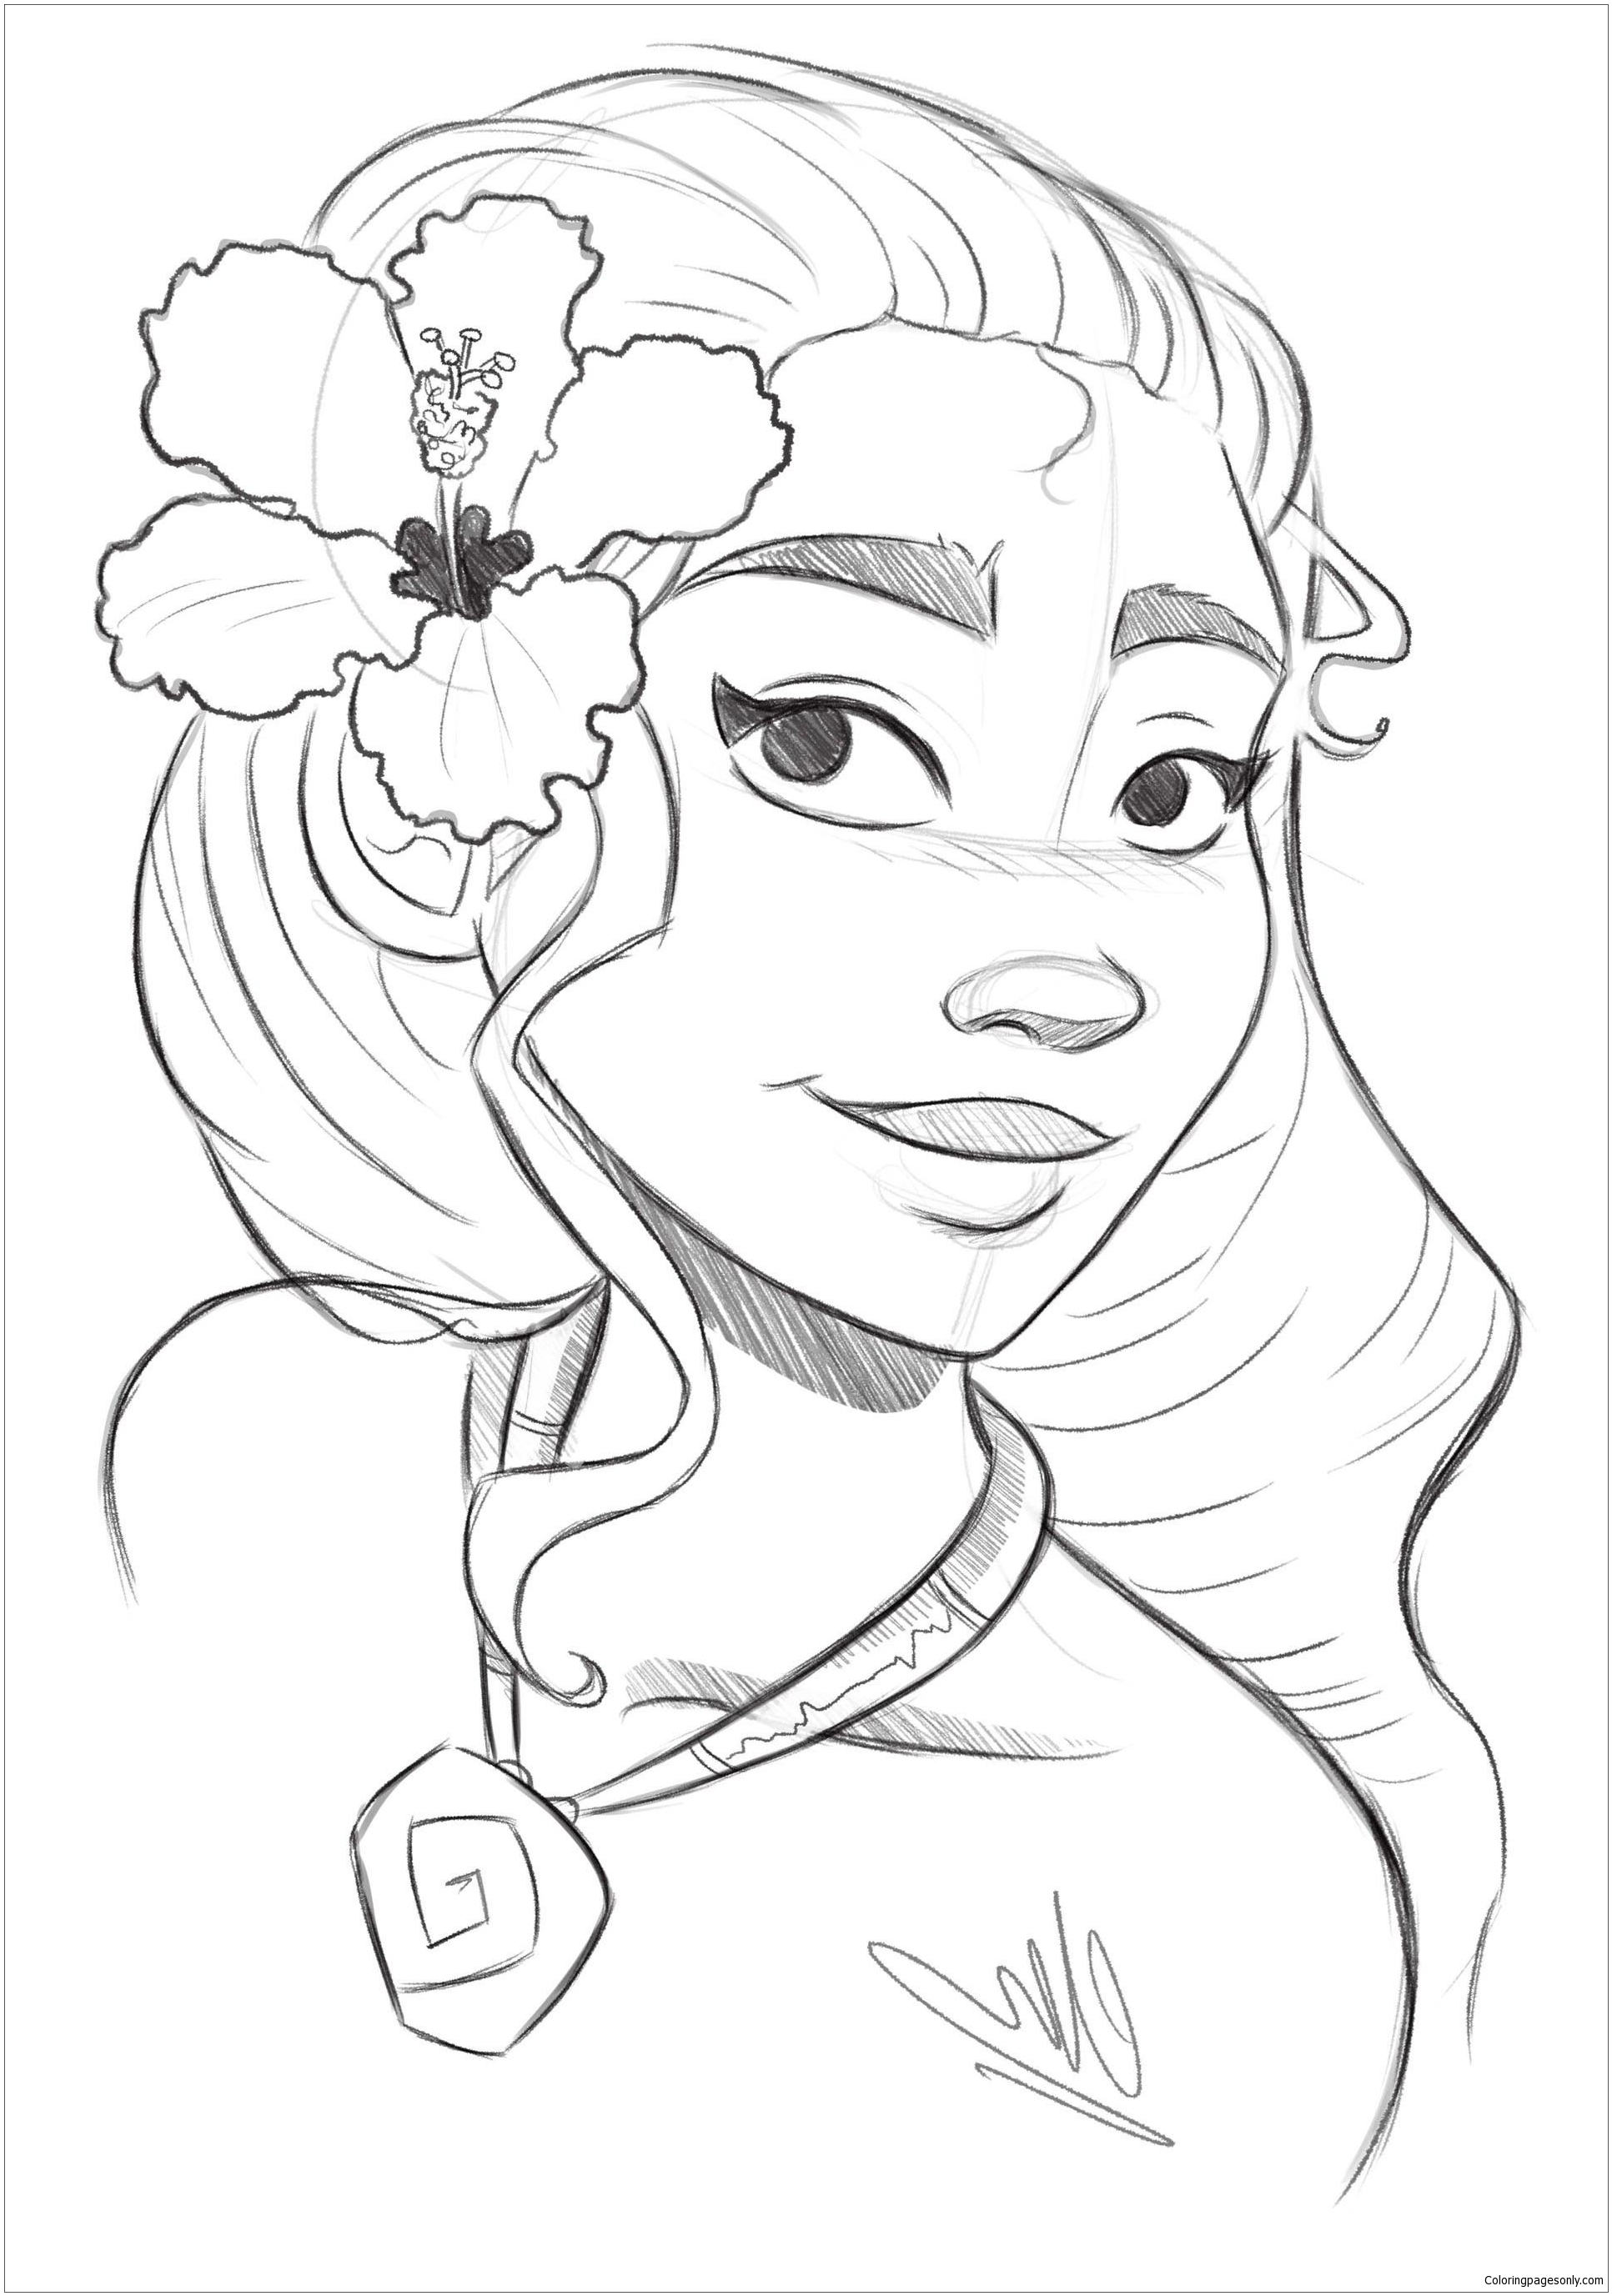 Princess Moana 2 Coloring Page - Free Coloring Pages Online